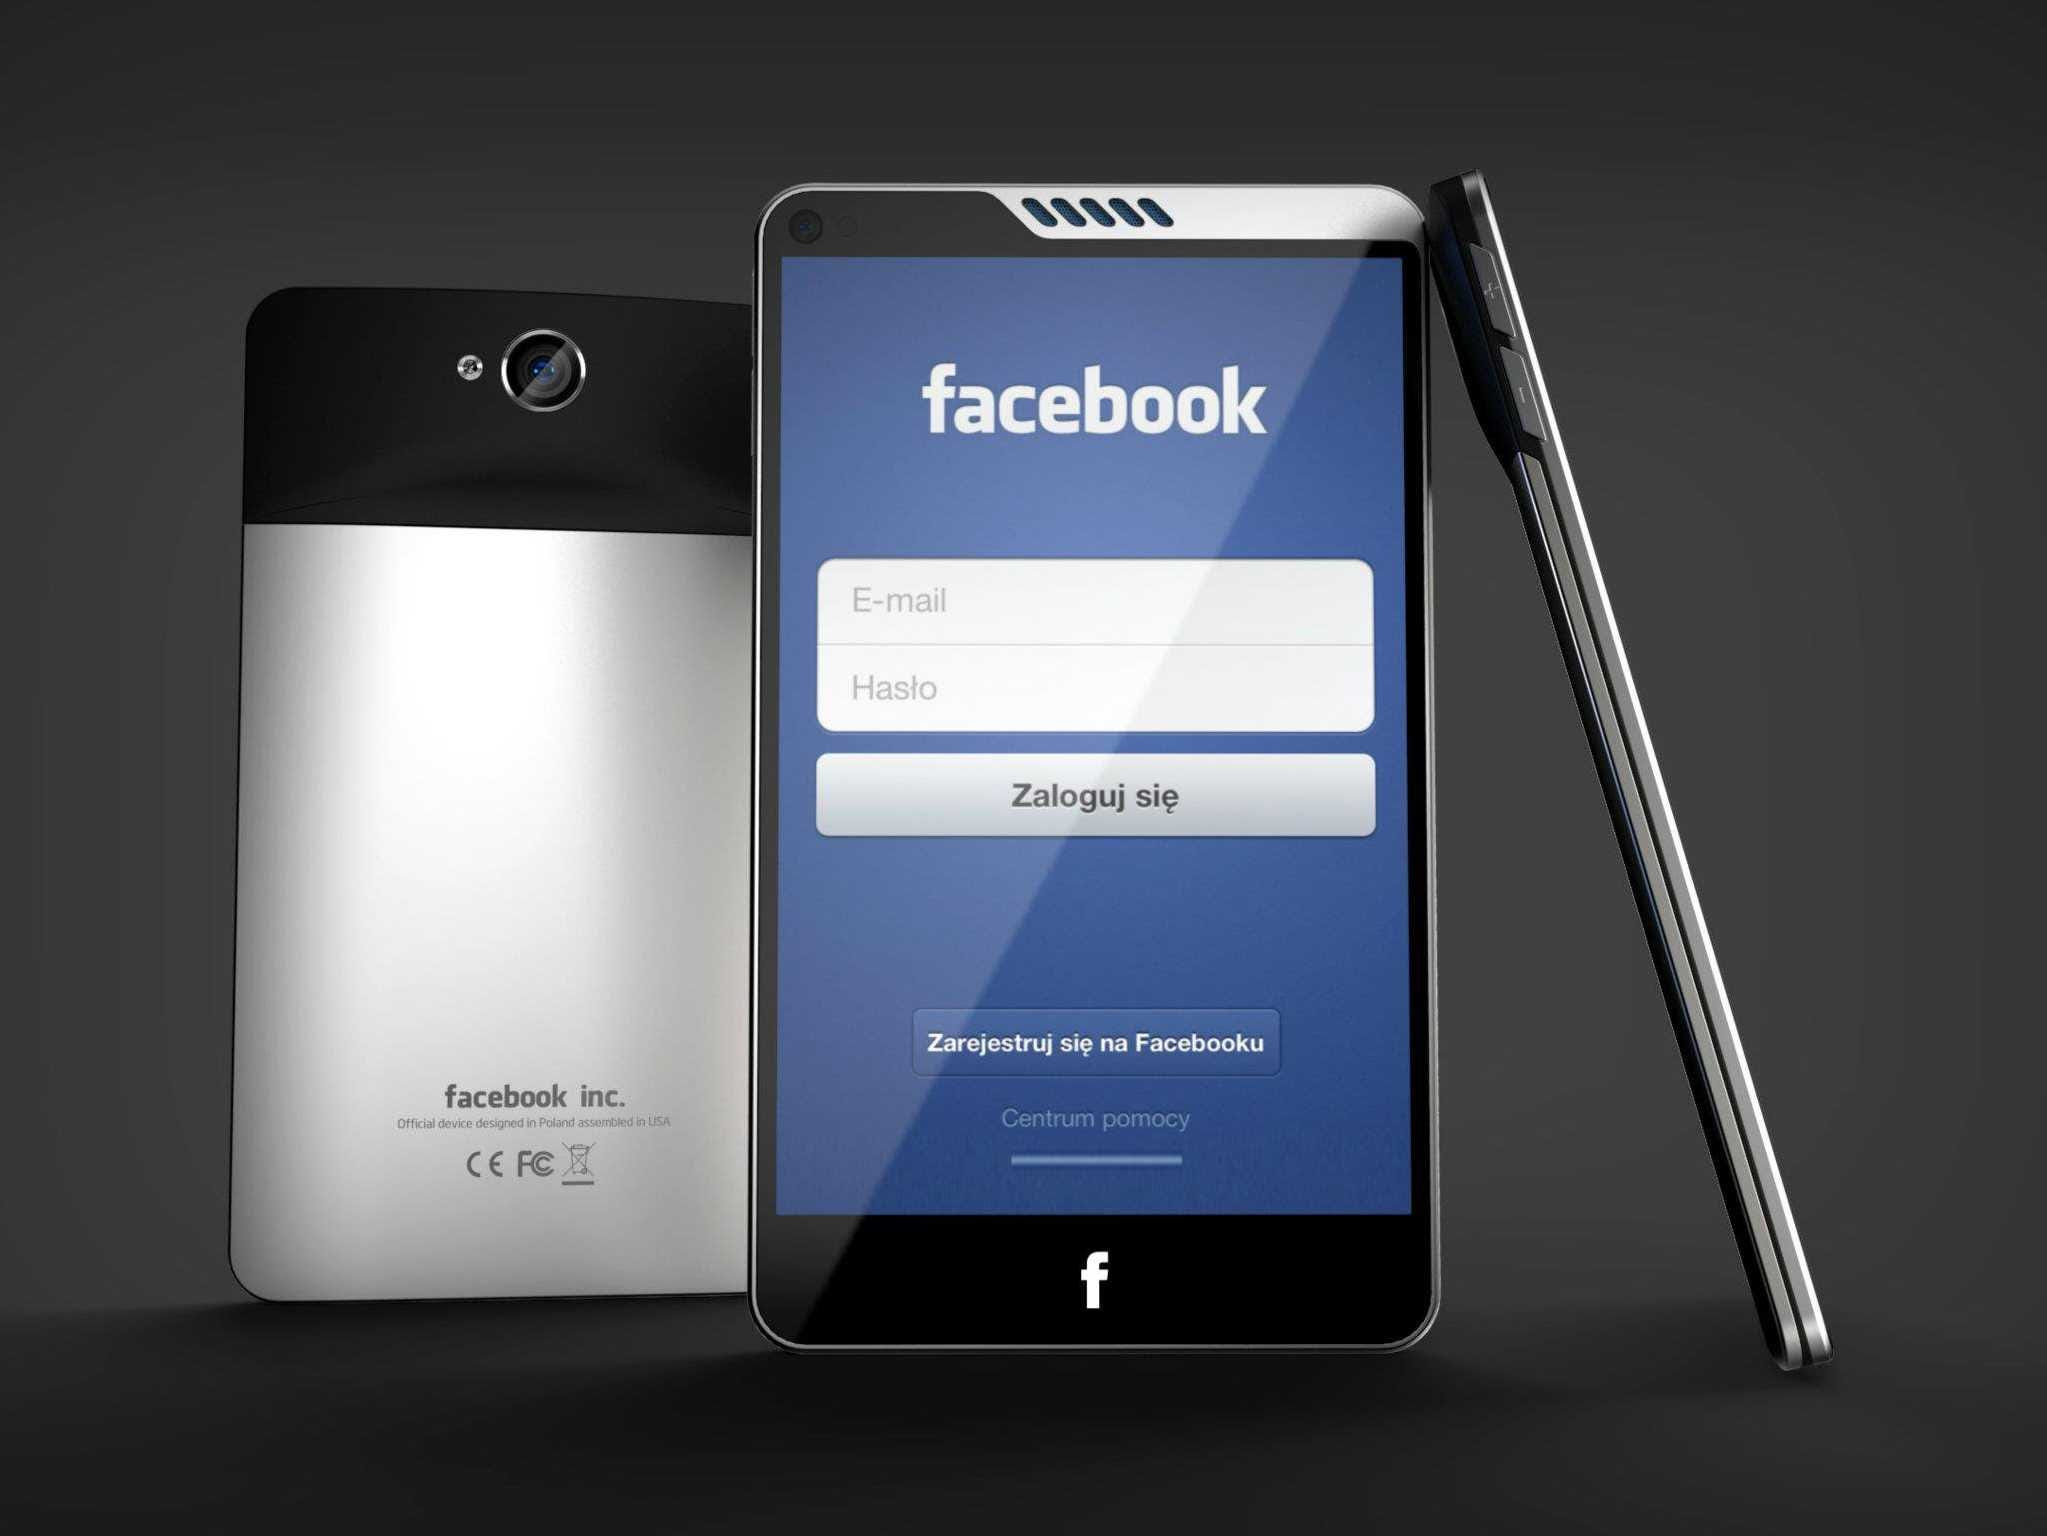 Facebook Phone coming? Facebook's future plans to be announced soon